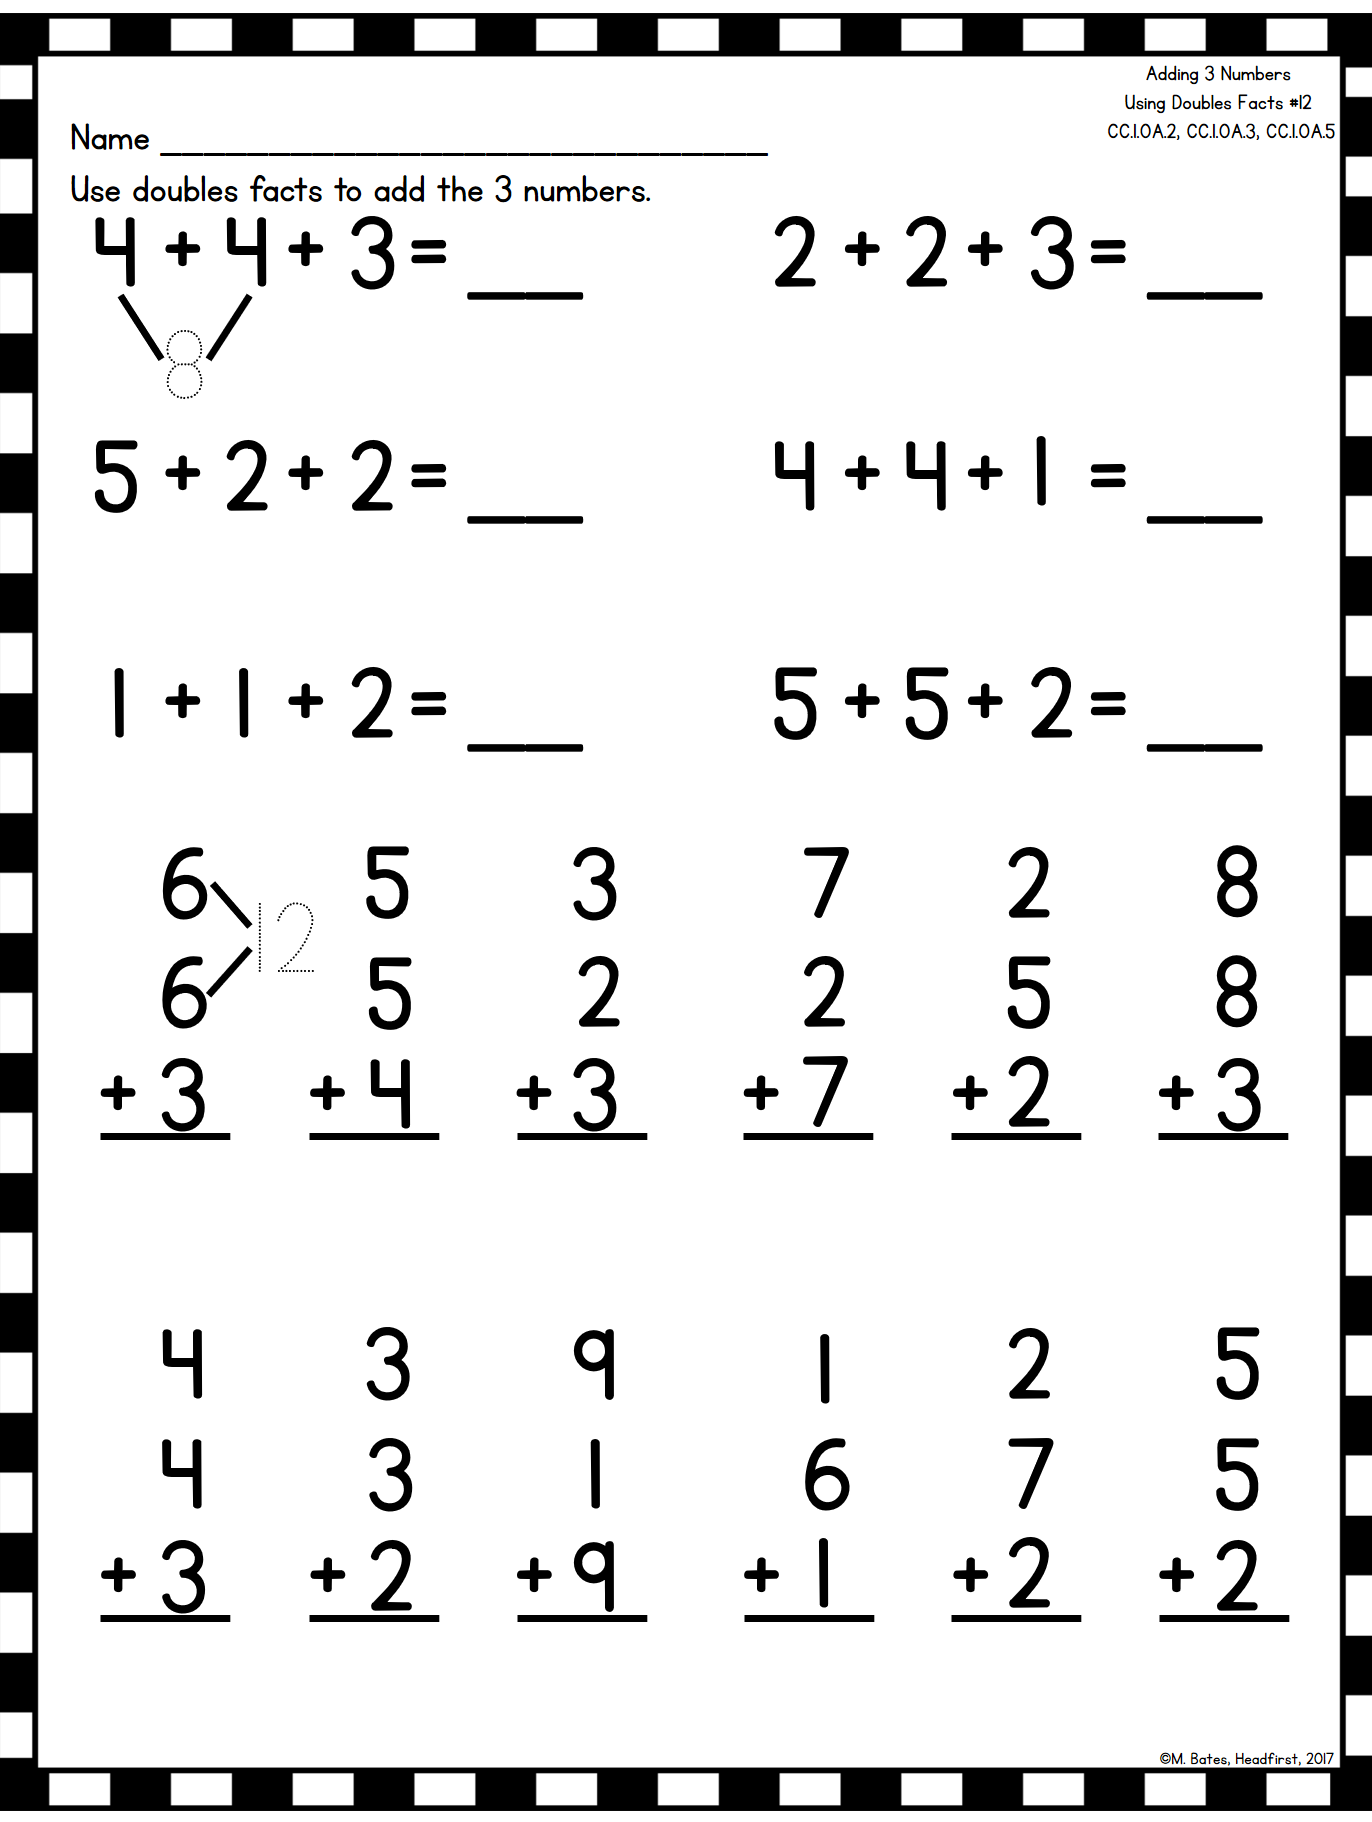 Adding 3 Numbers Worksheets For Grade 3 First Grade Math Worksheets Math Addition Worksheets